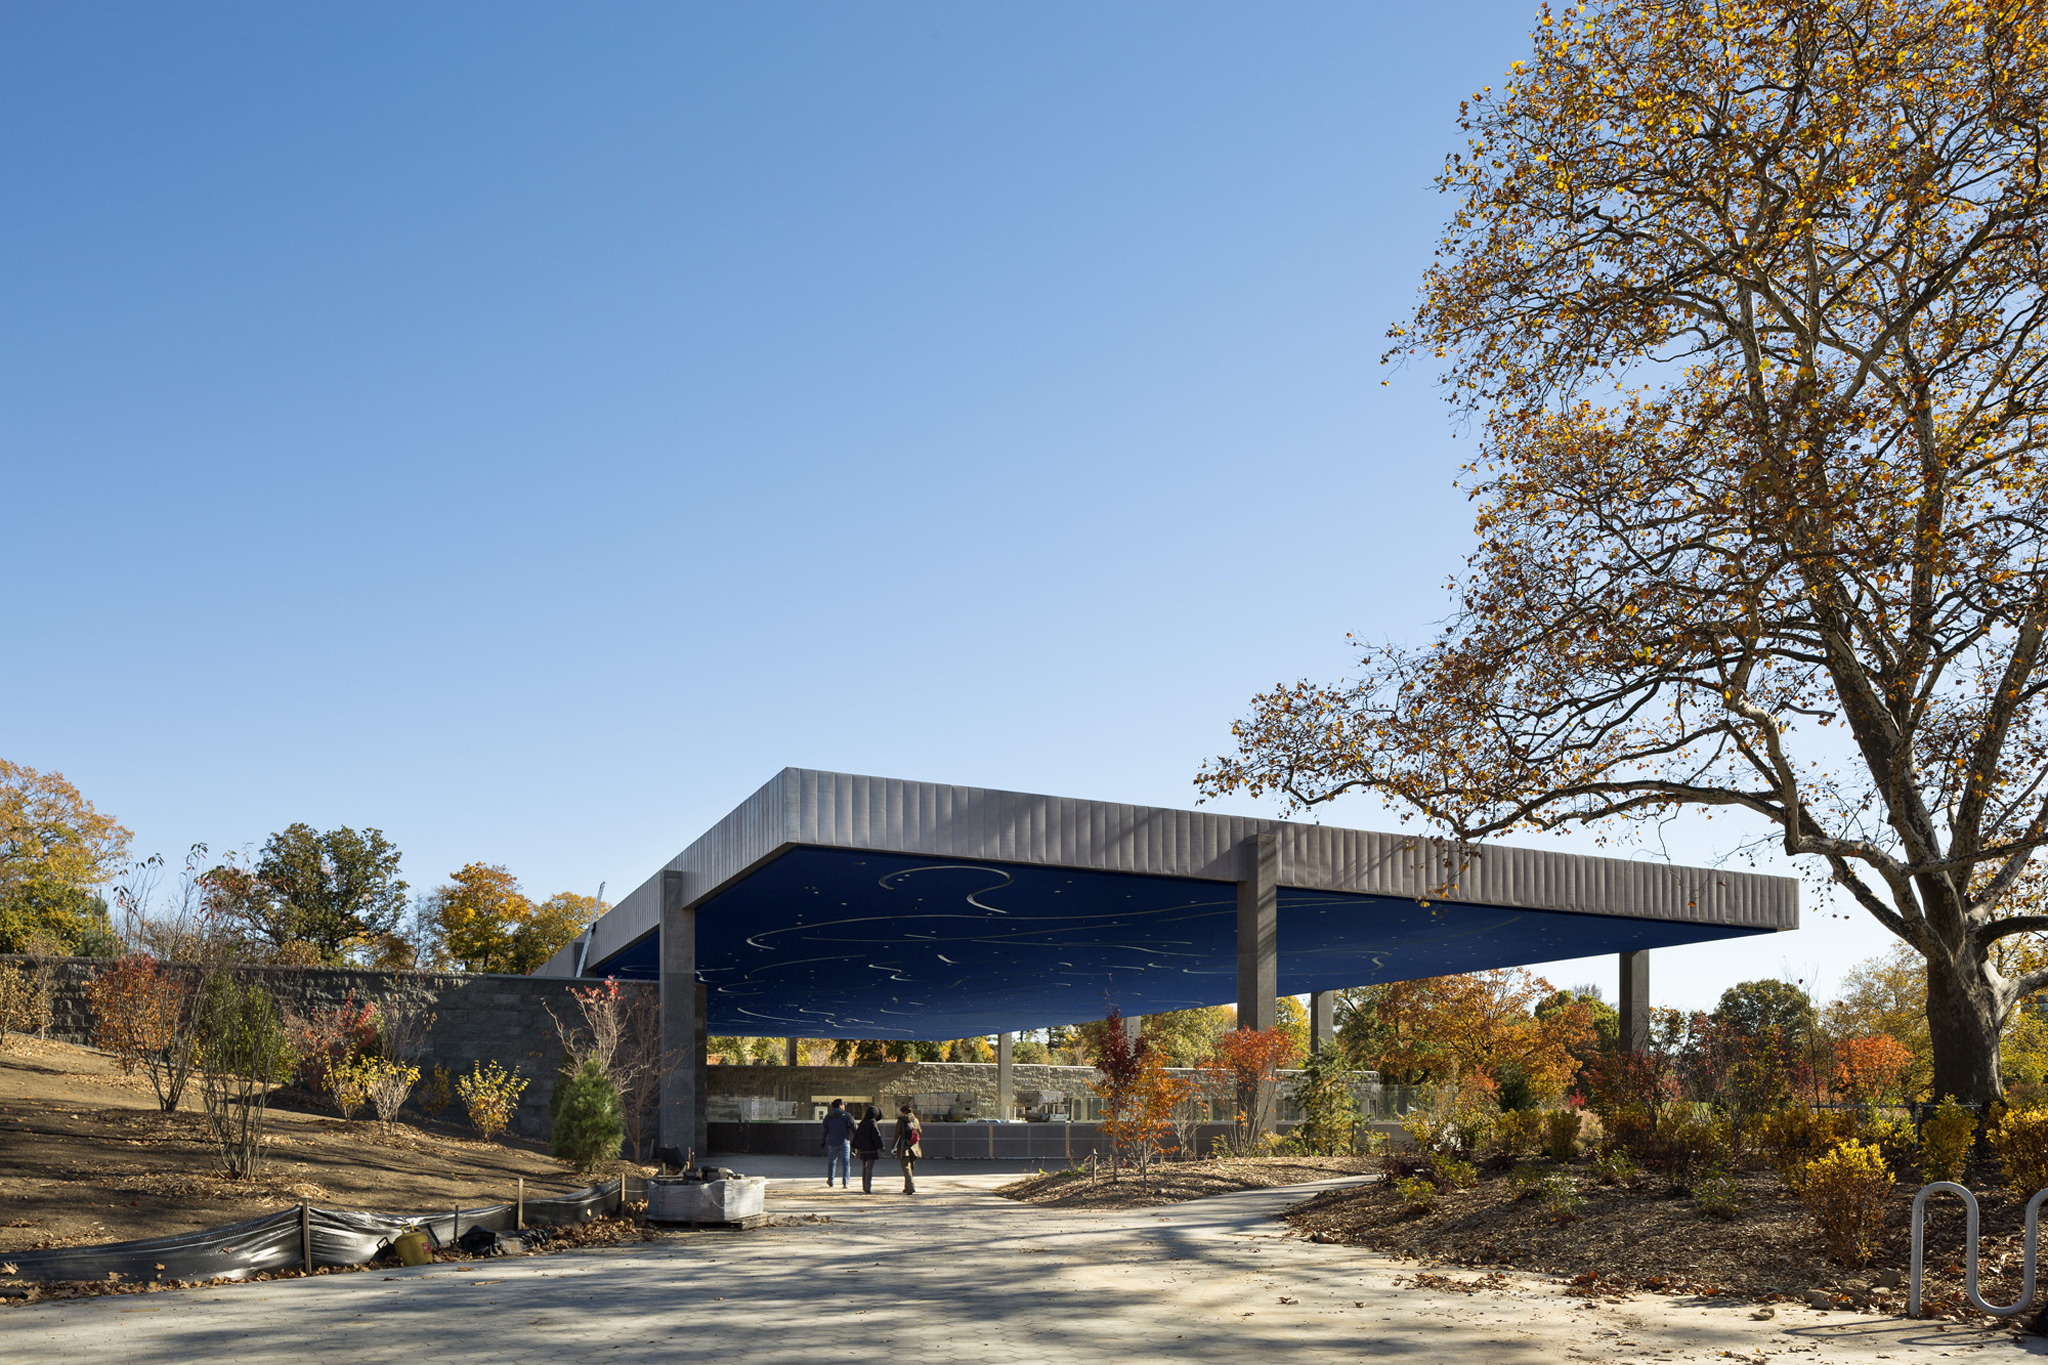 Check out Prospect Park's shiny new Lakeside facility